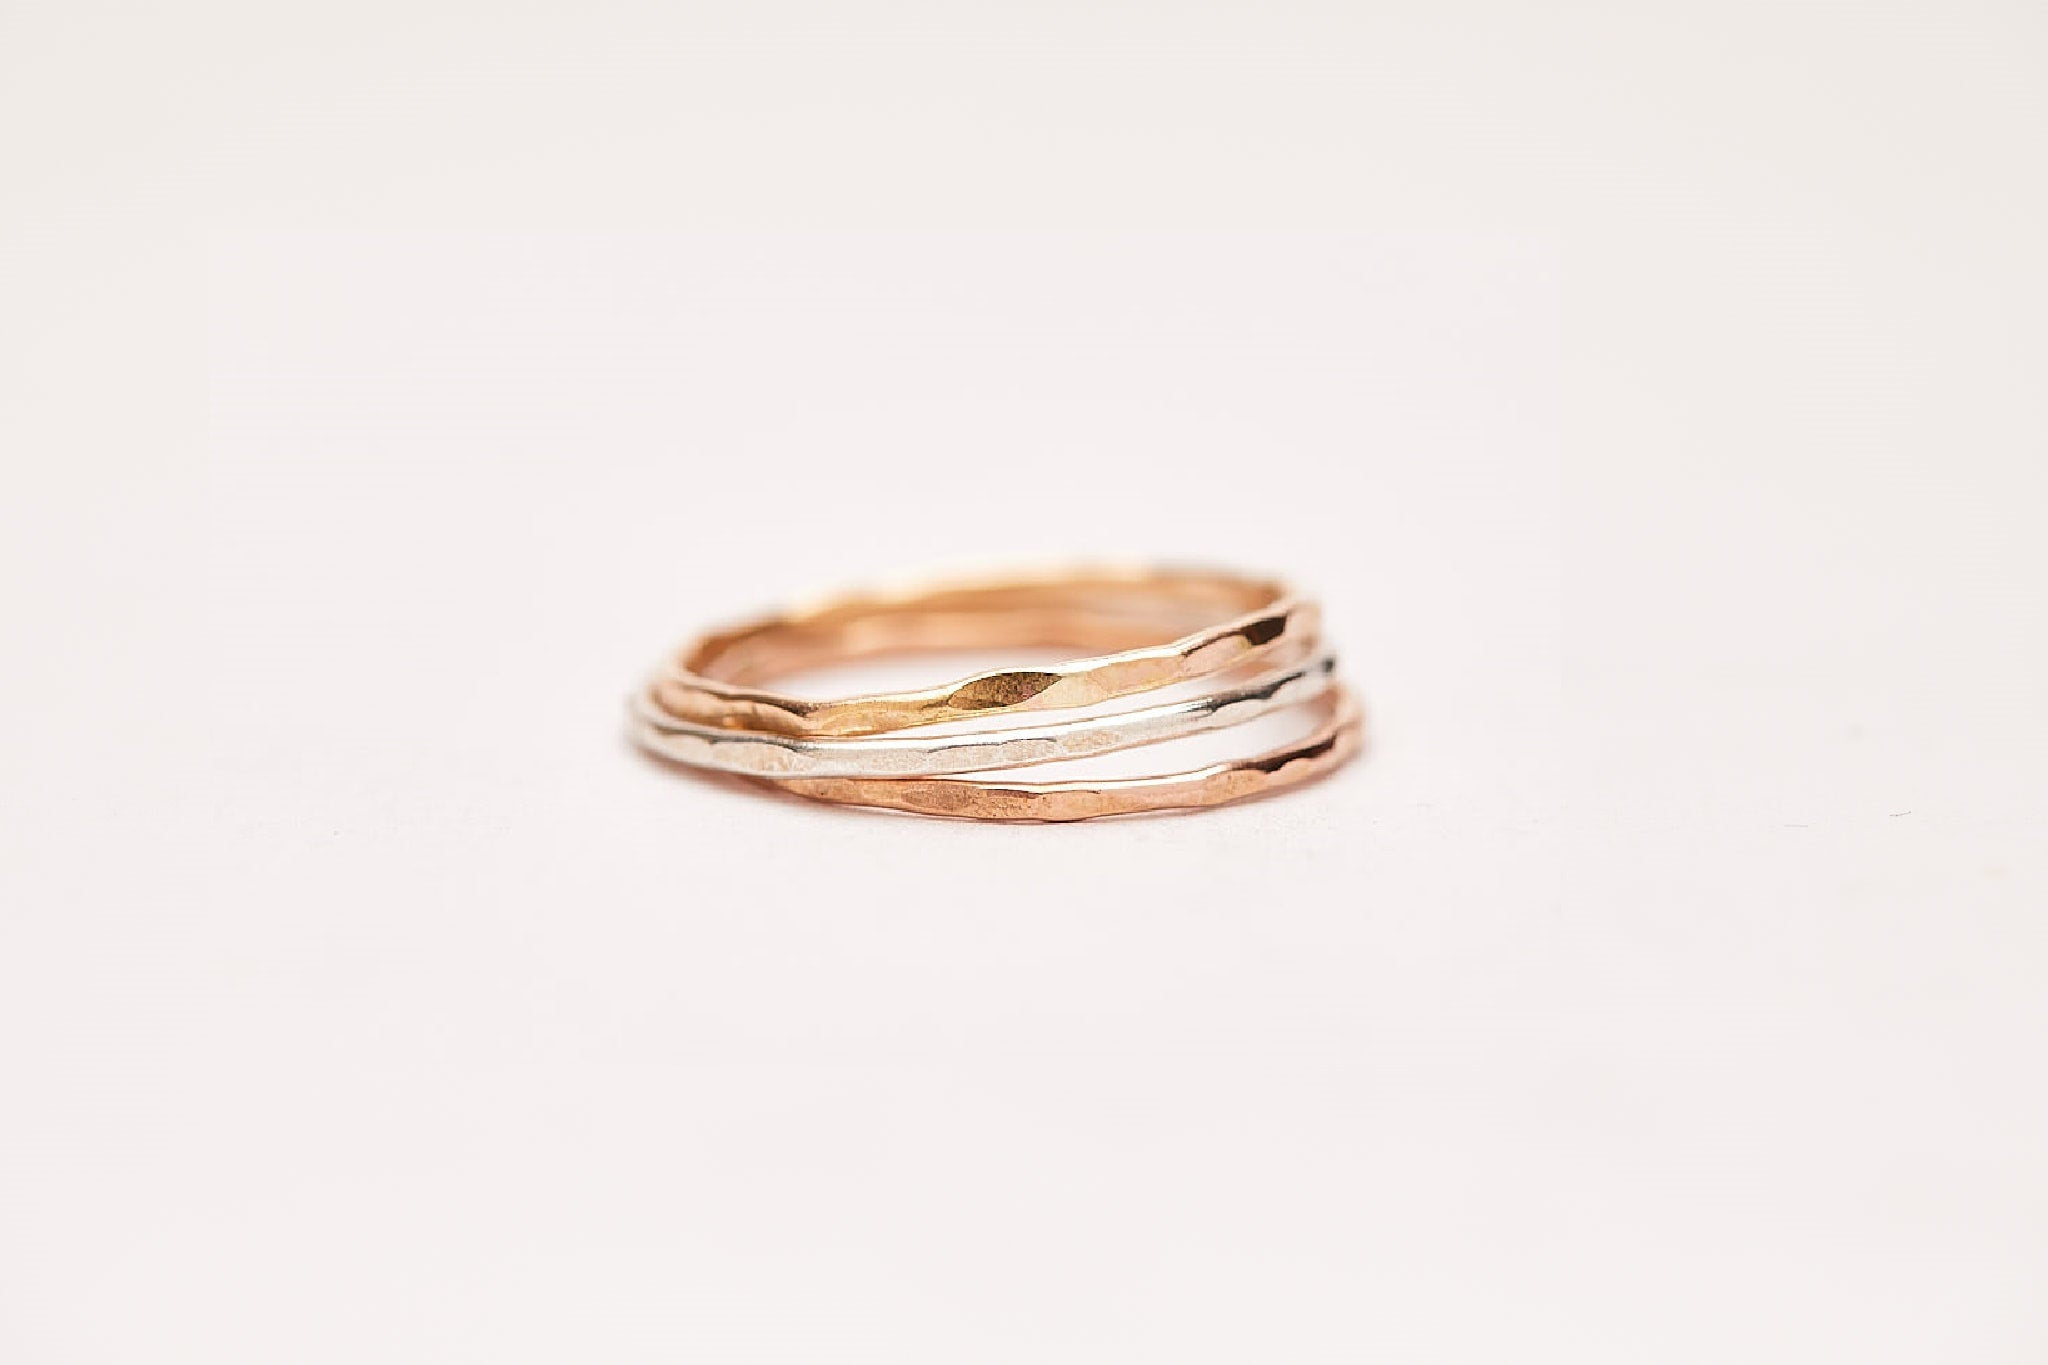 Rose Gold, Sterling Silver and Gold filled fine stacking ring